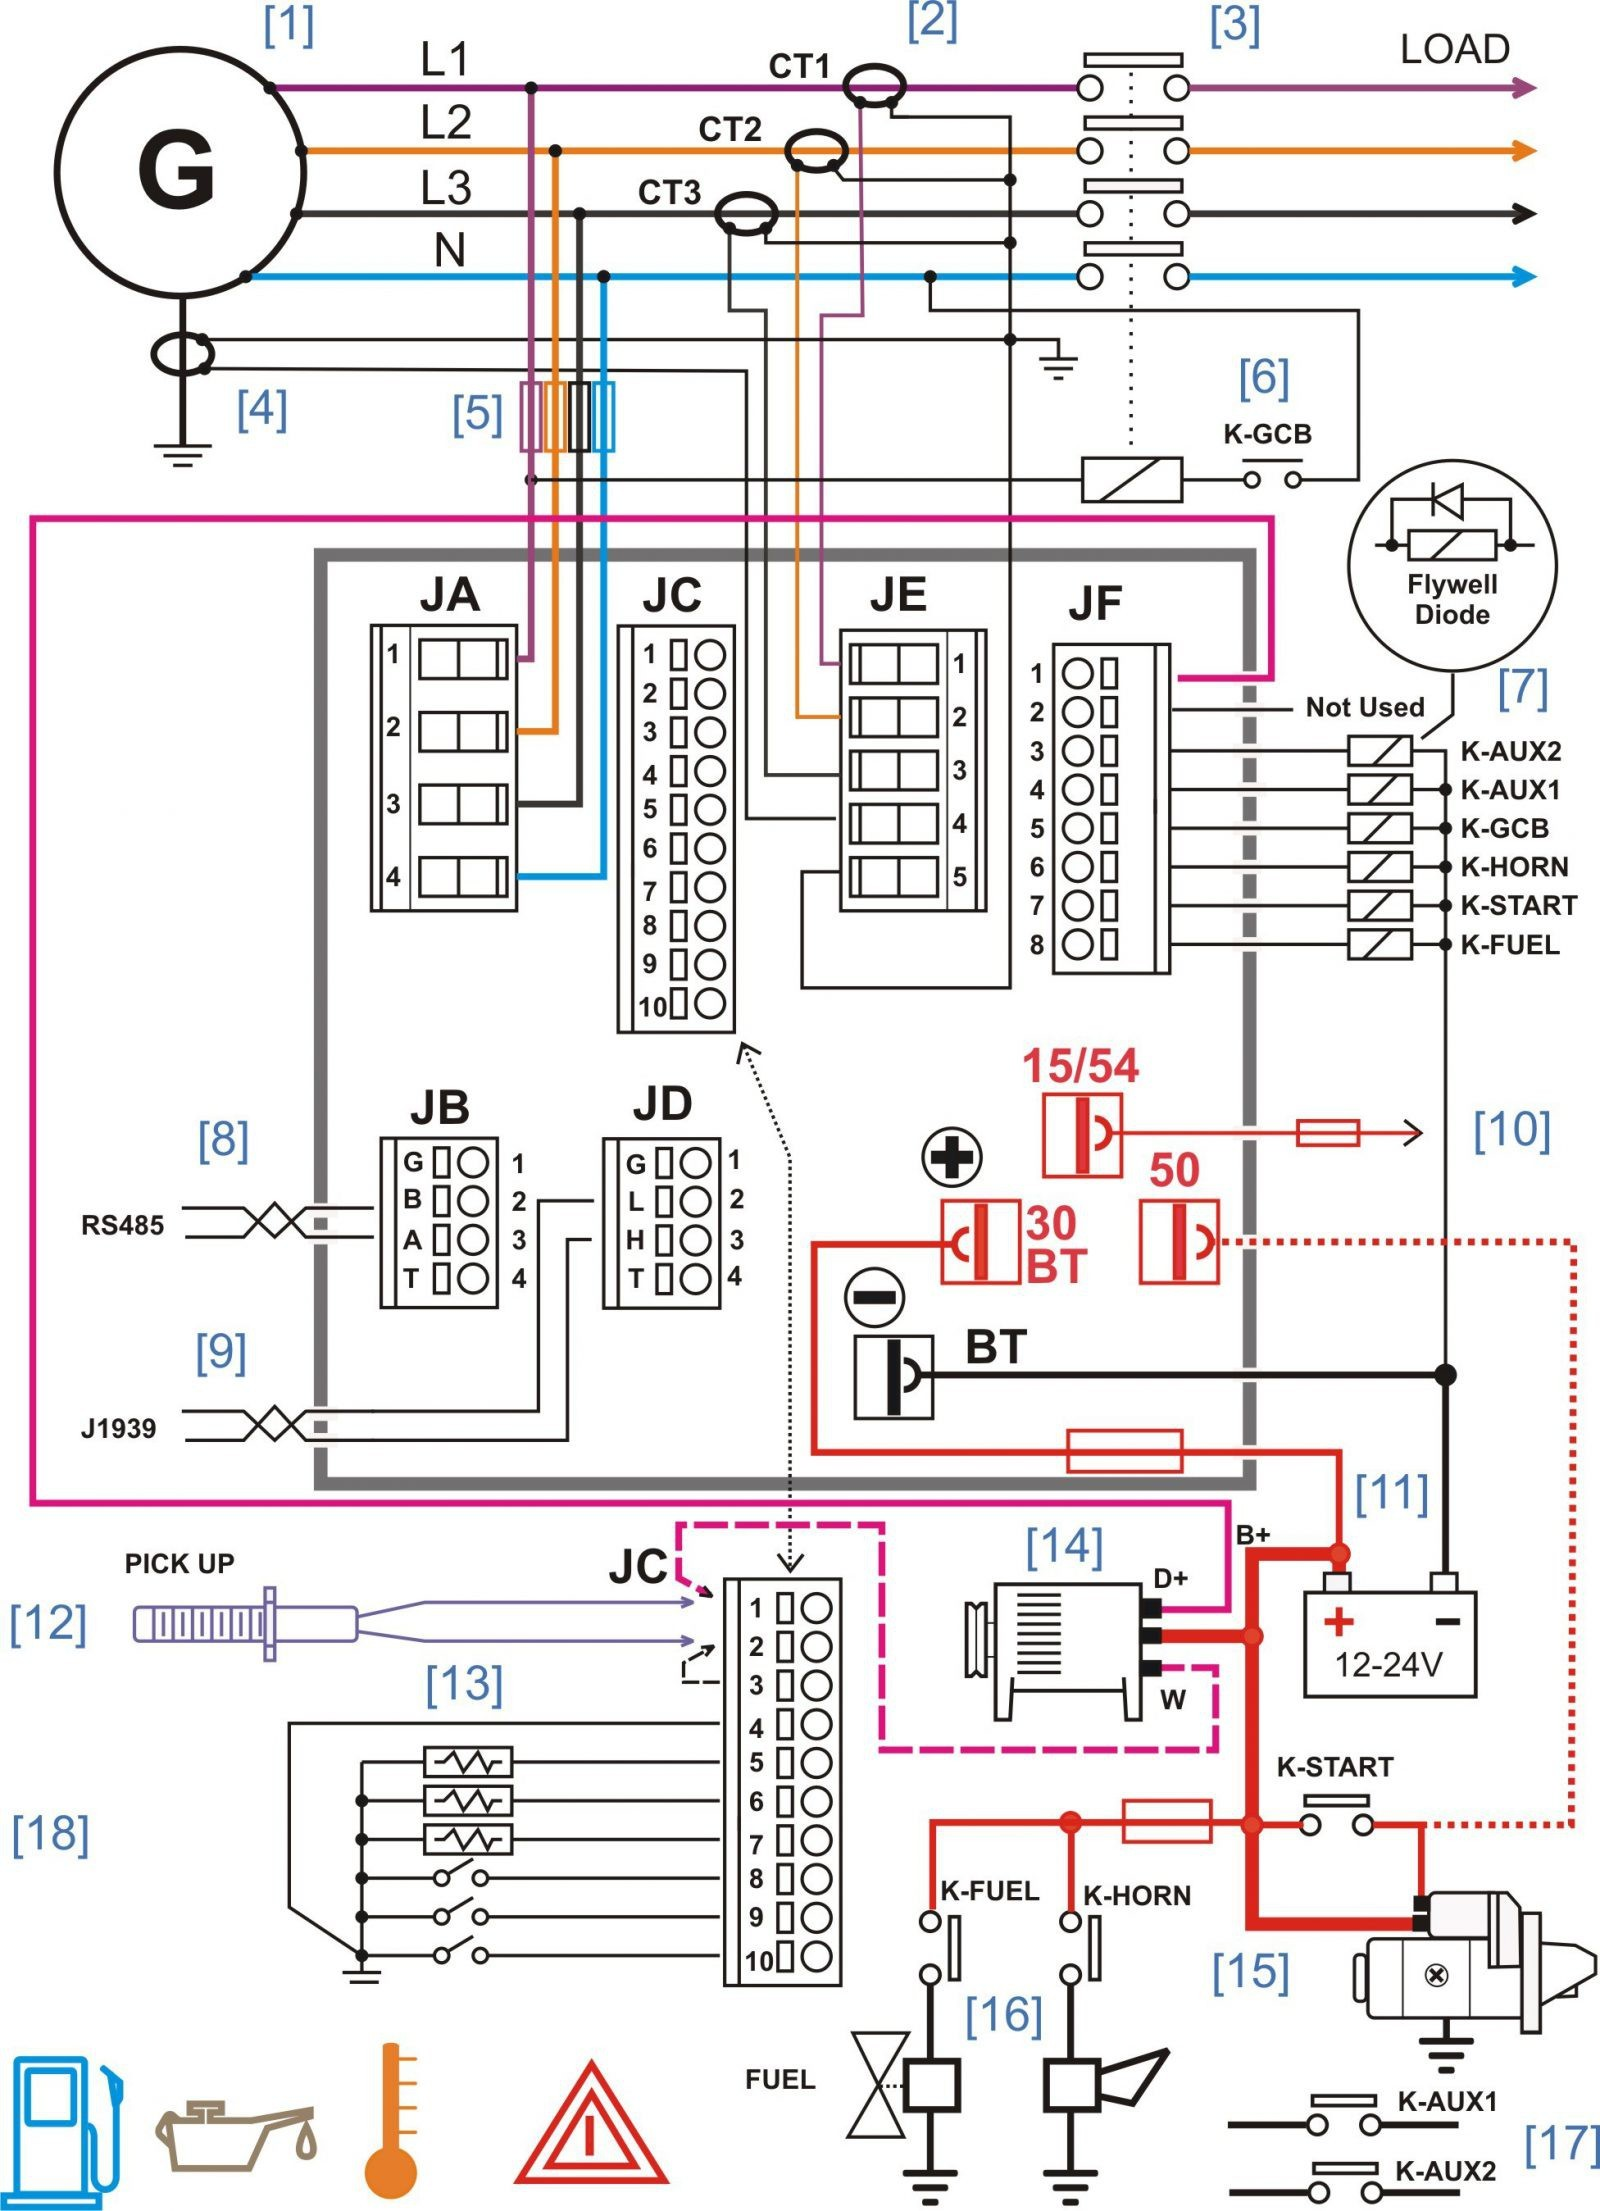 Wire Diagrams for Cars Lovely Car Stereo Wiring Diagram Diagram Of Wire Diagrams for Cars